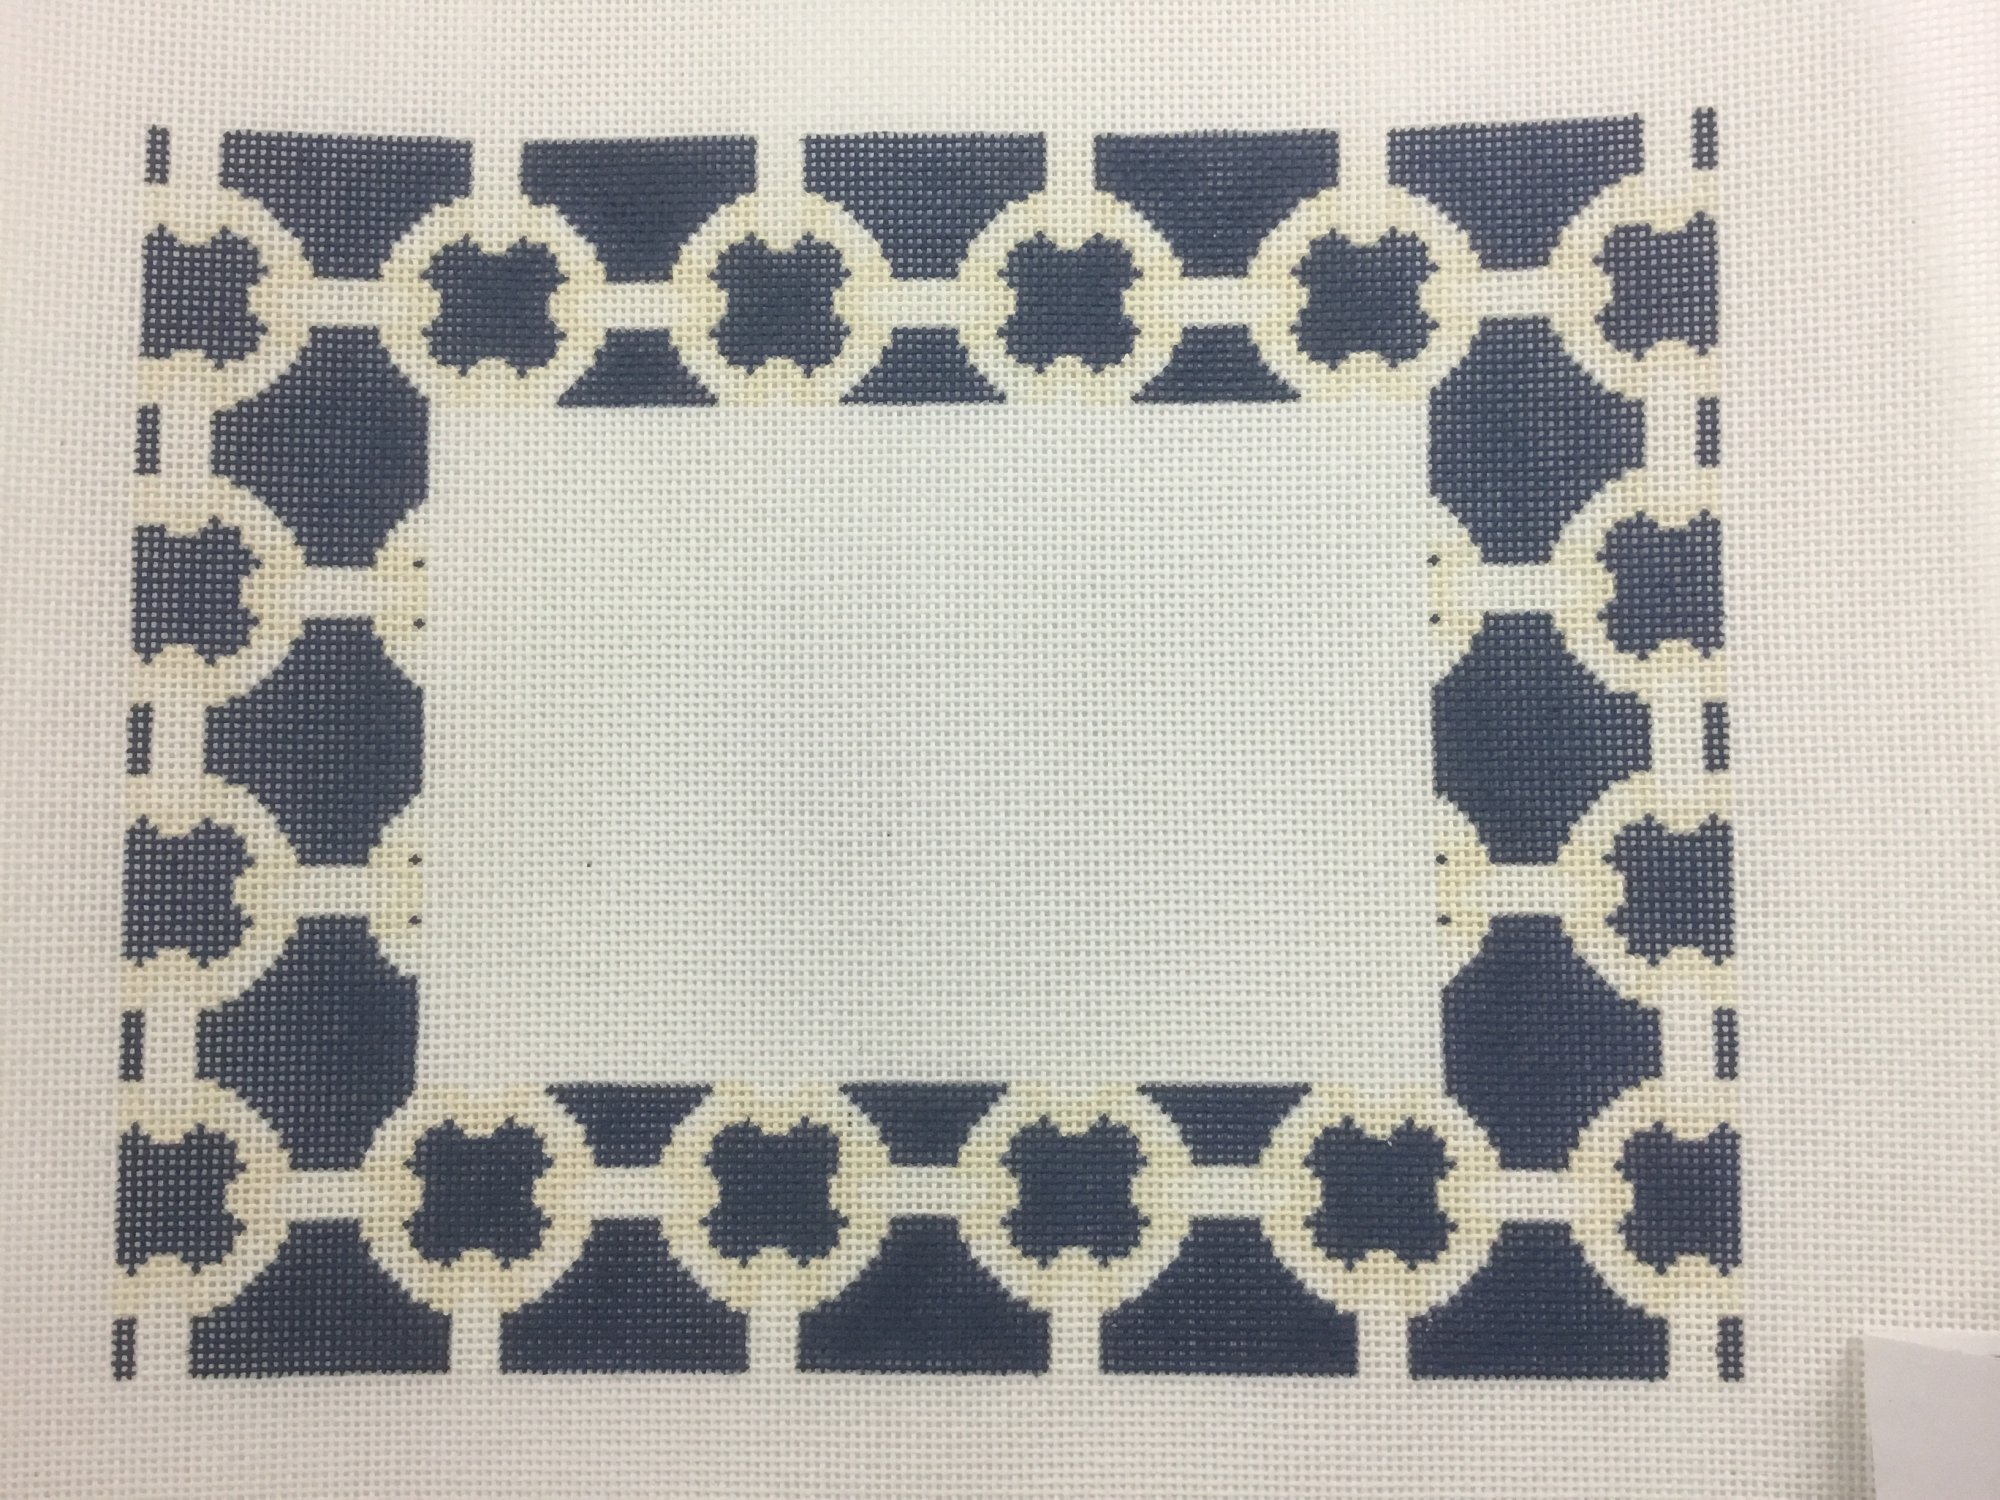 Blue/Cream Fretwork Picture Frame,18 ct.,7x9